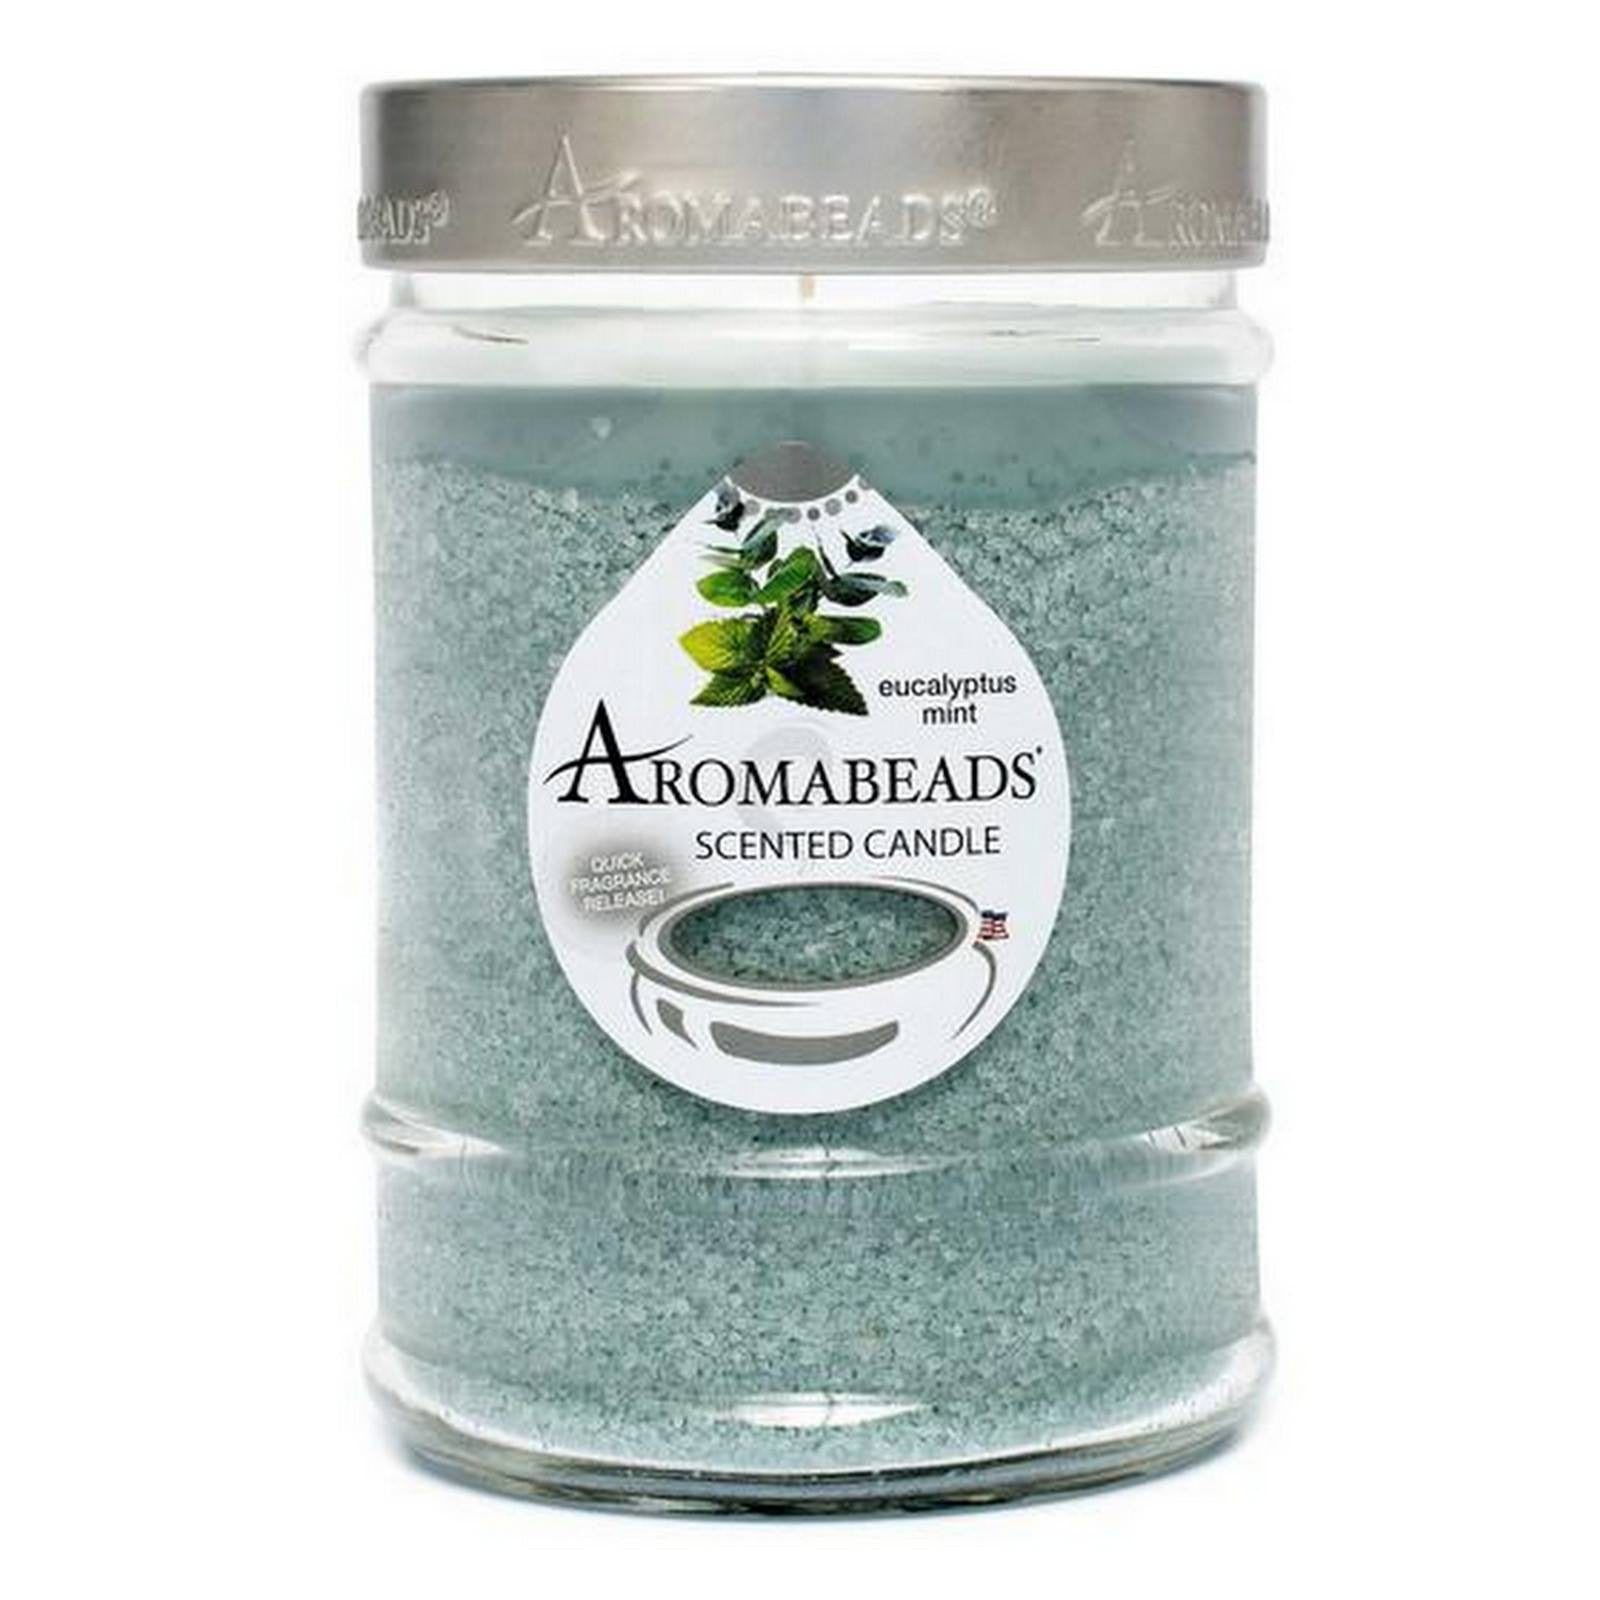 Aromabeads Eucalyptus Mint Scented Canister Candle - Candlemart.com